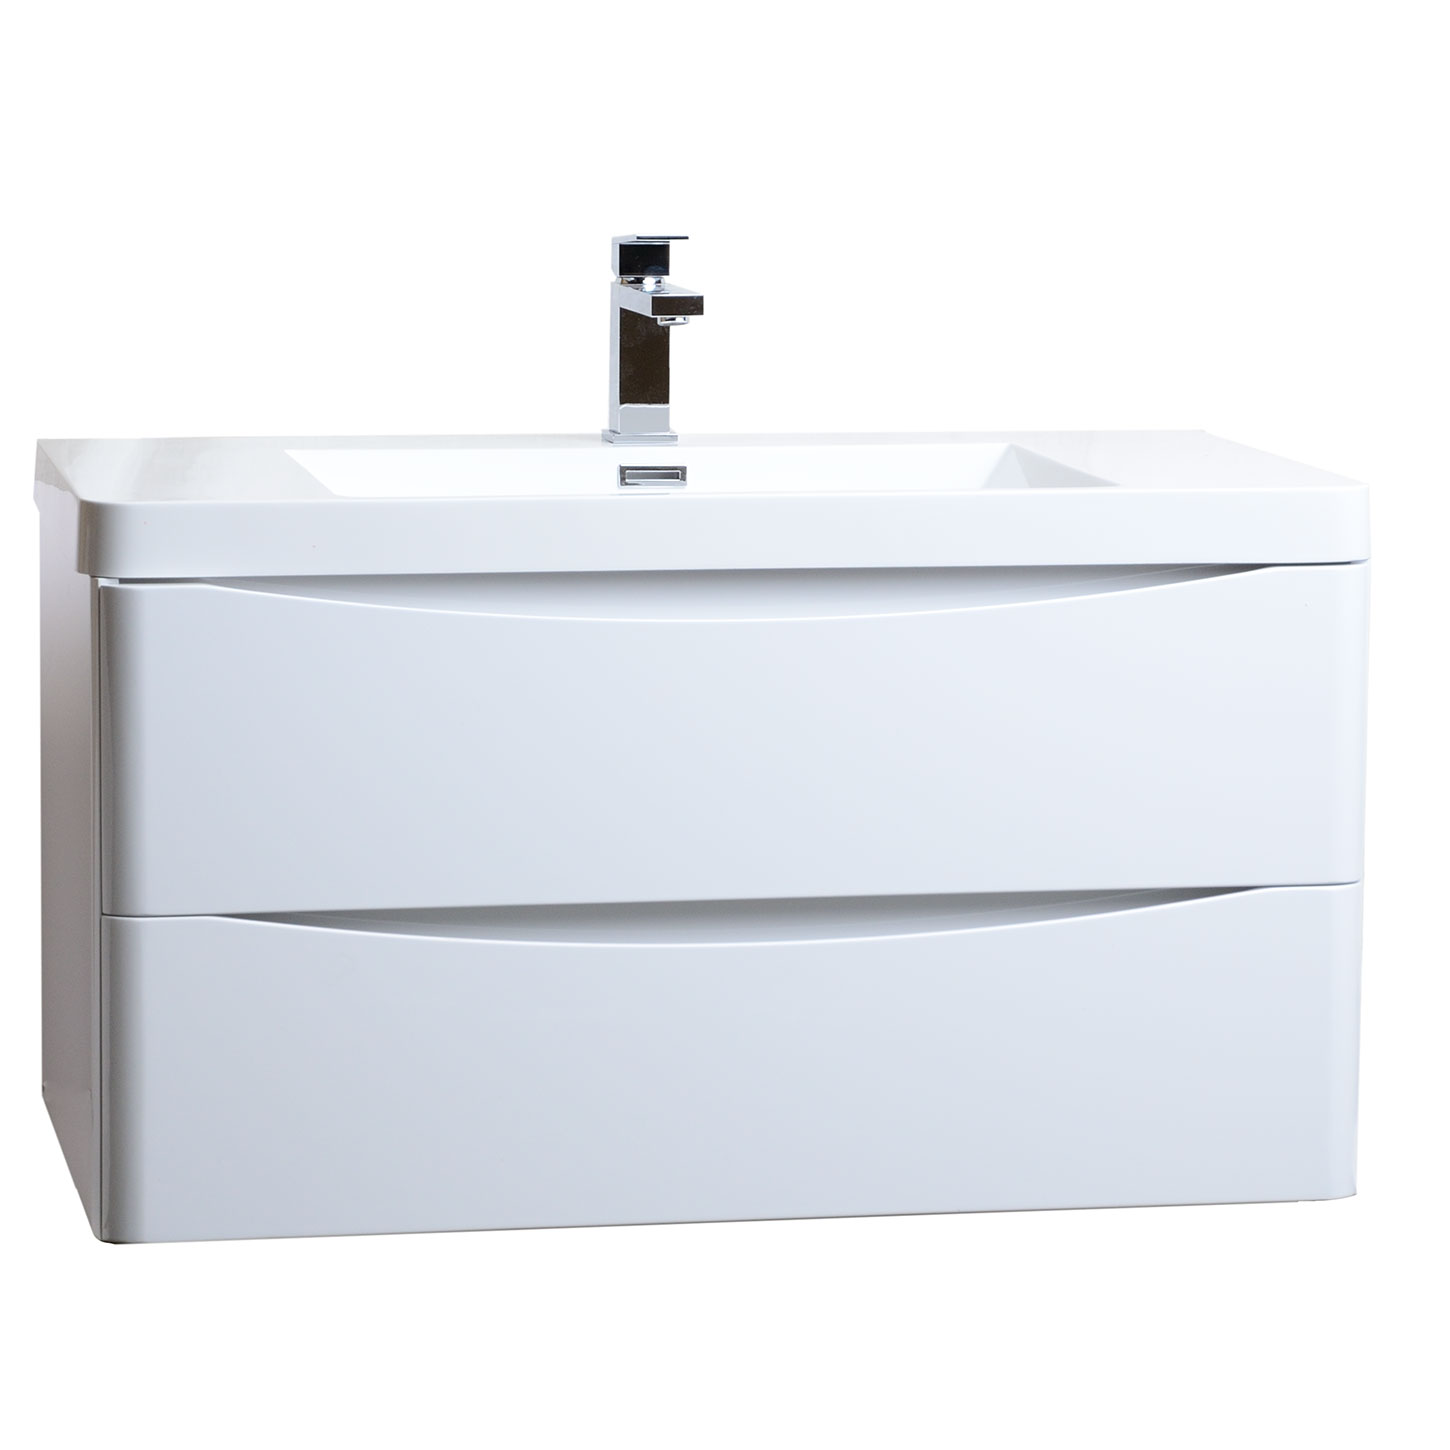 wall vanities shipping conceptbaths page white mount bathroom vanity inch com cabinets hgw buy free on tn